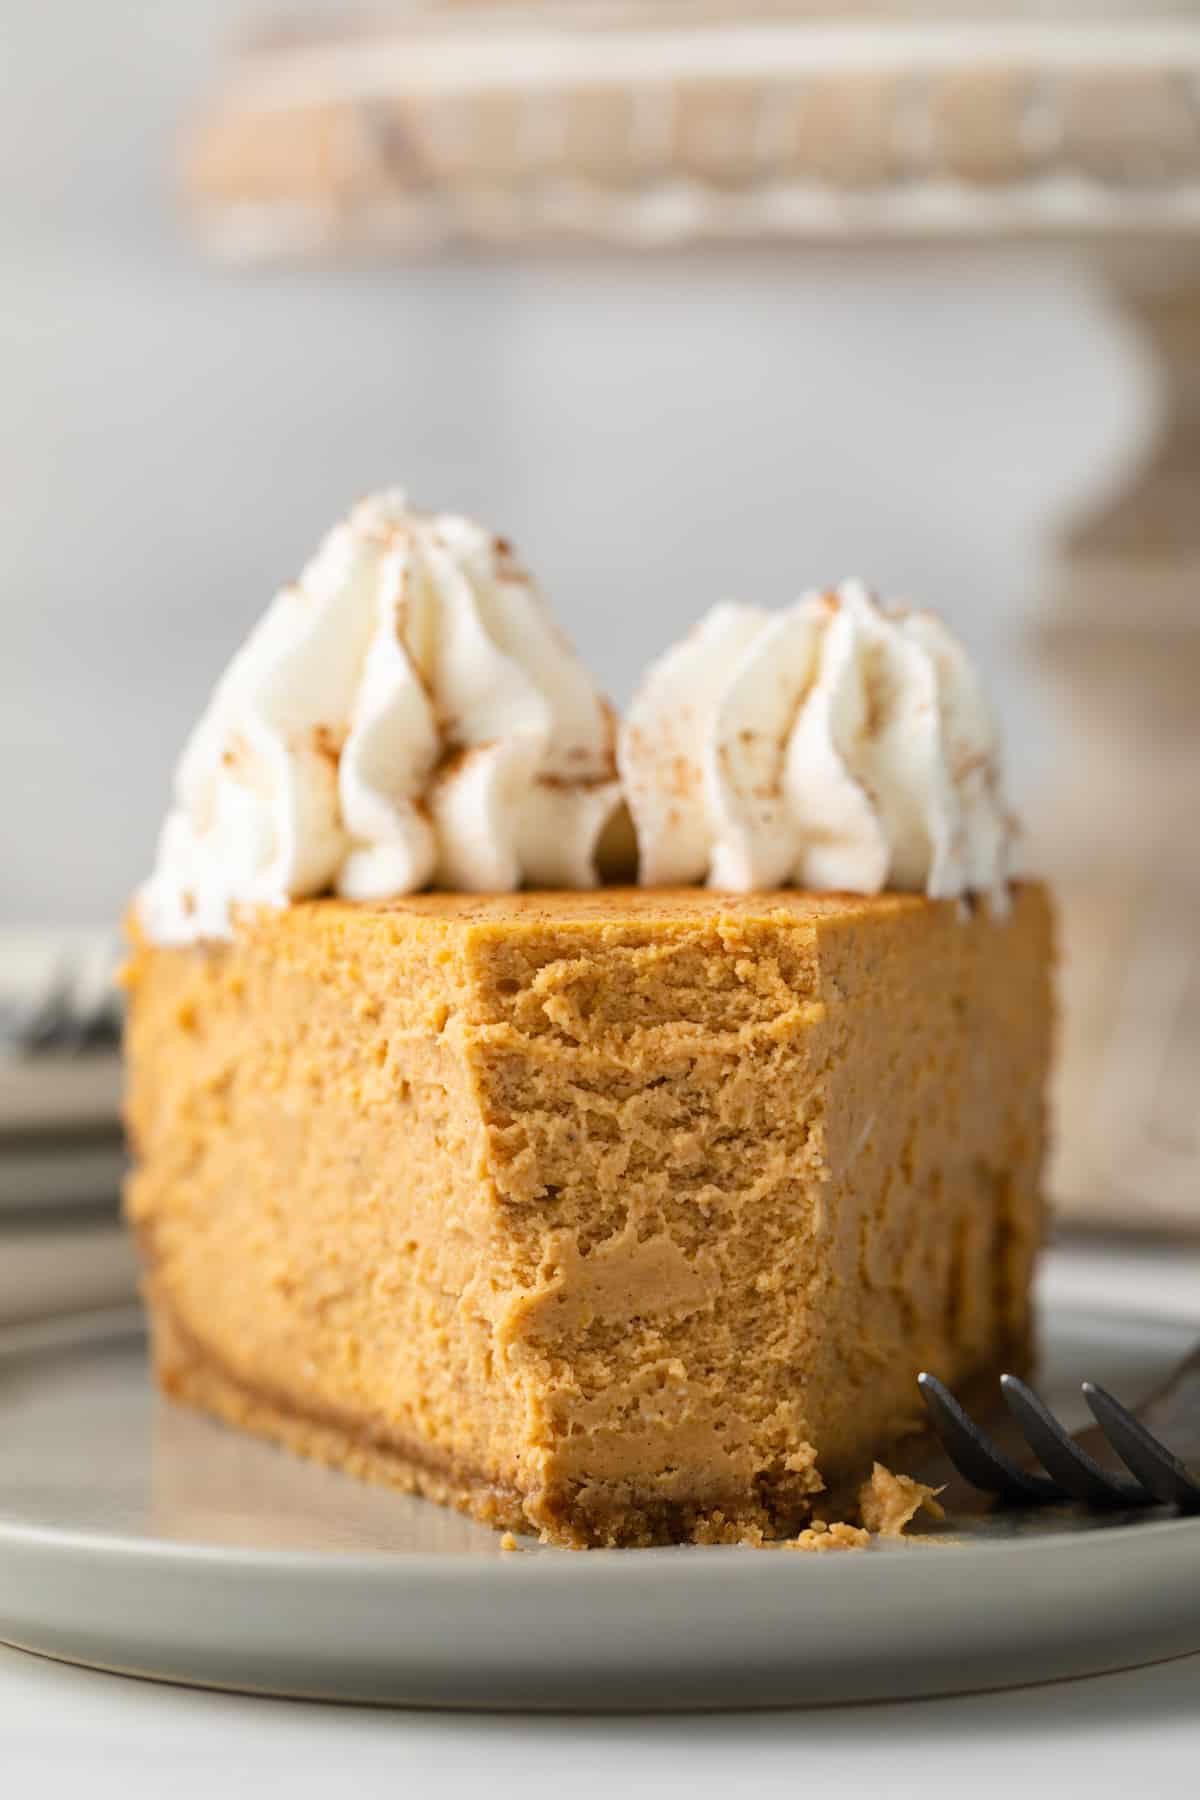 Angled view of a slice of Pumpkin Cheesecake on a white plate with a fork taking a bite out.